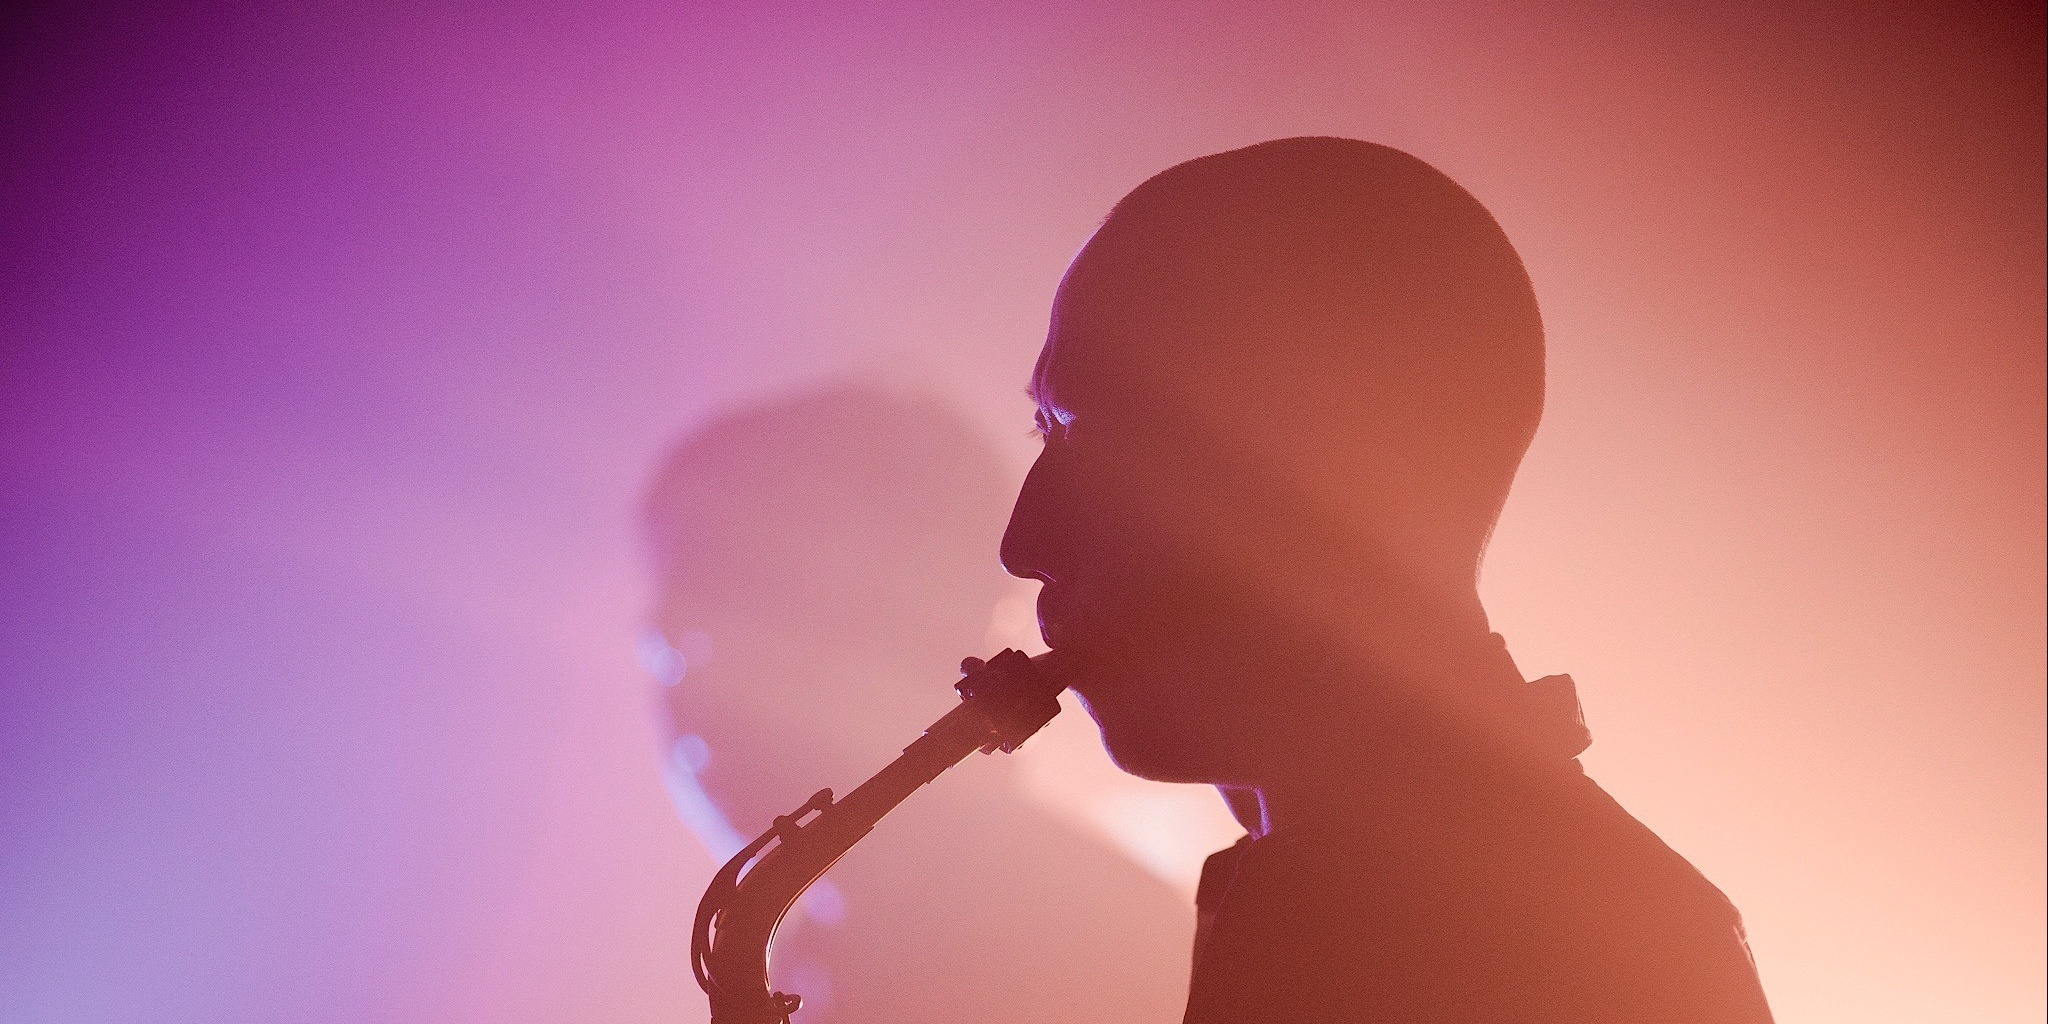 A Debt To Jazz: Non-jazz musicians discuss how the genre has shaped them